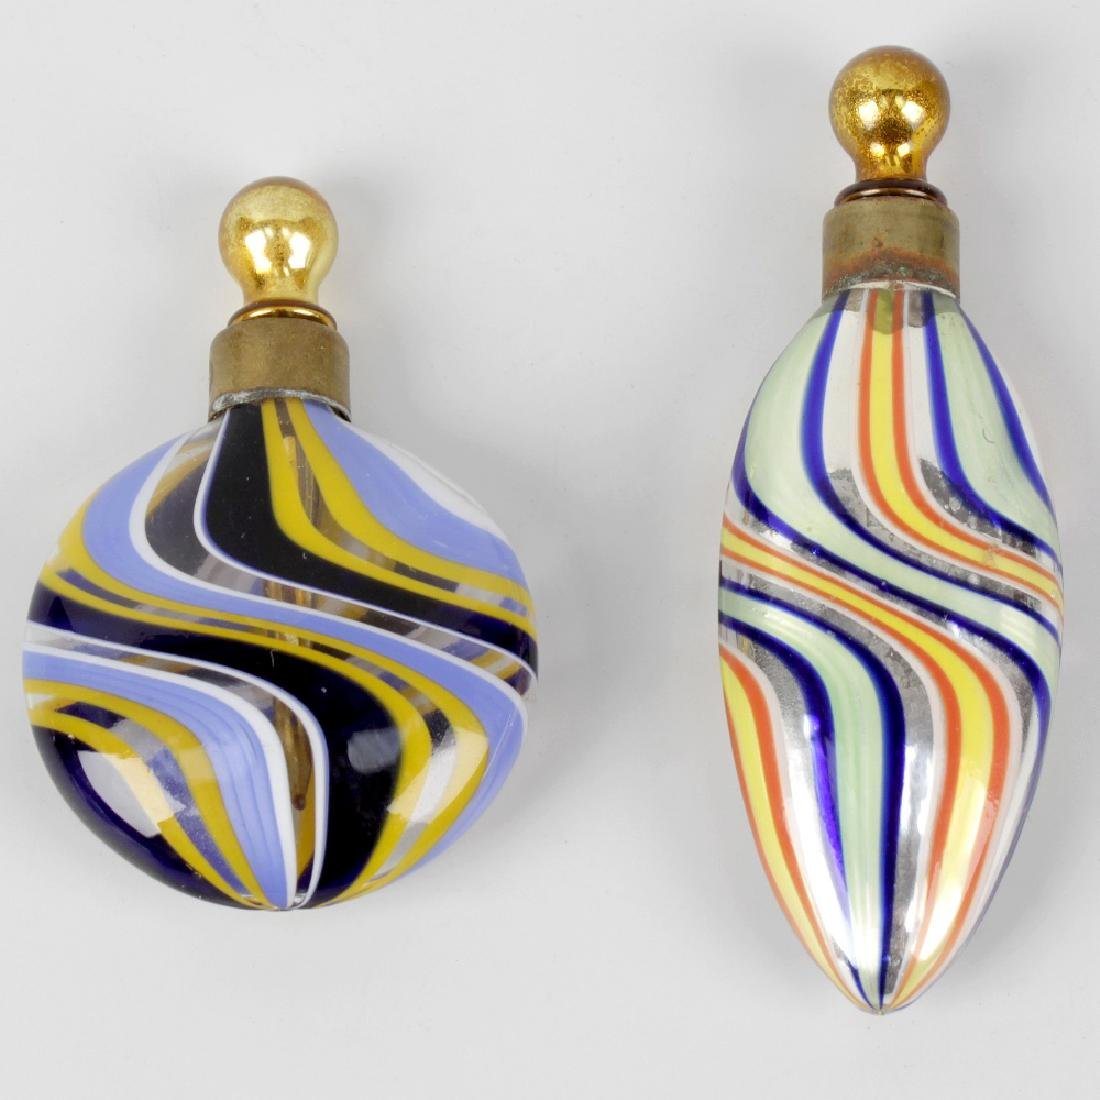 Two early 20th century glass scent phials, each with